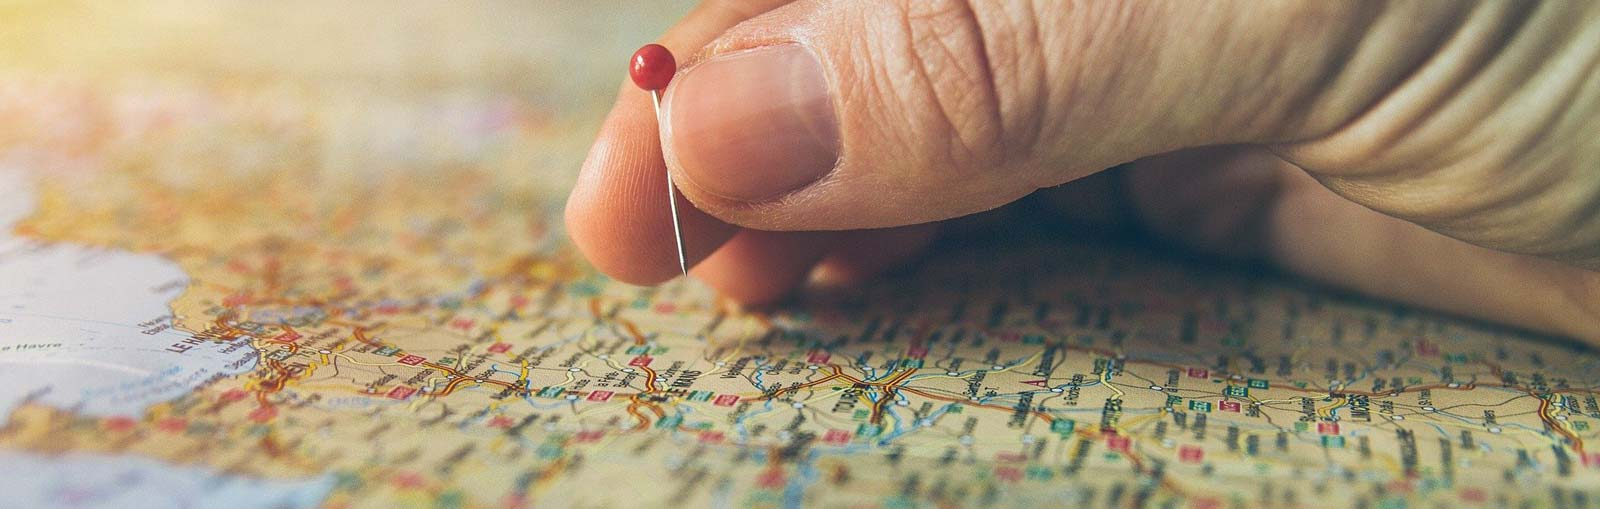 Holding Pin on Map